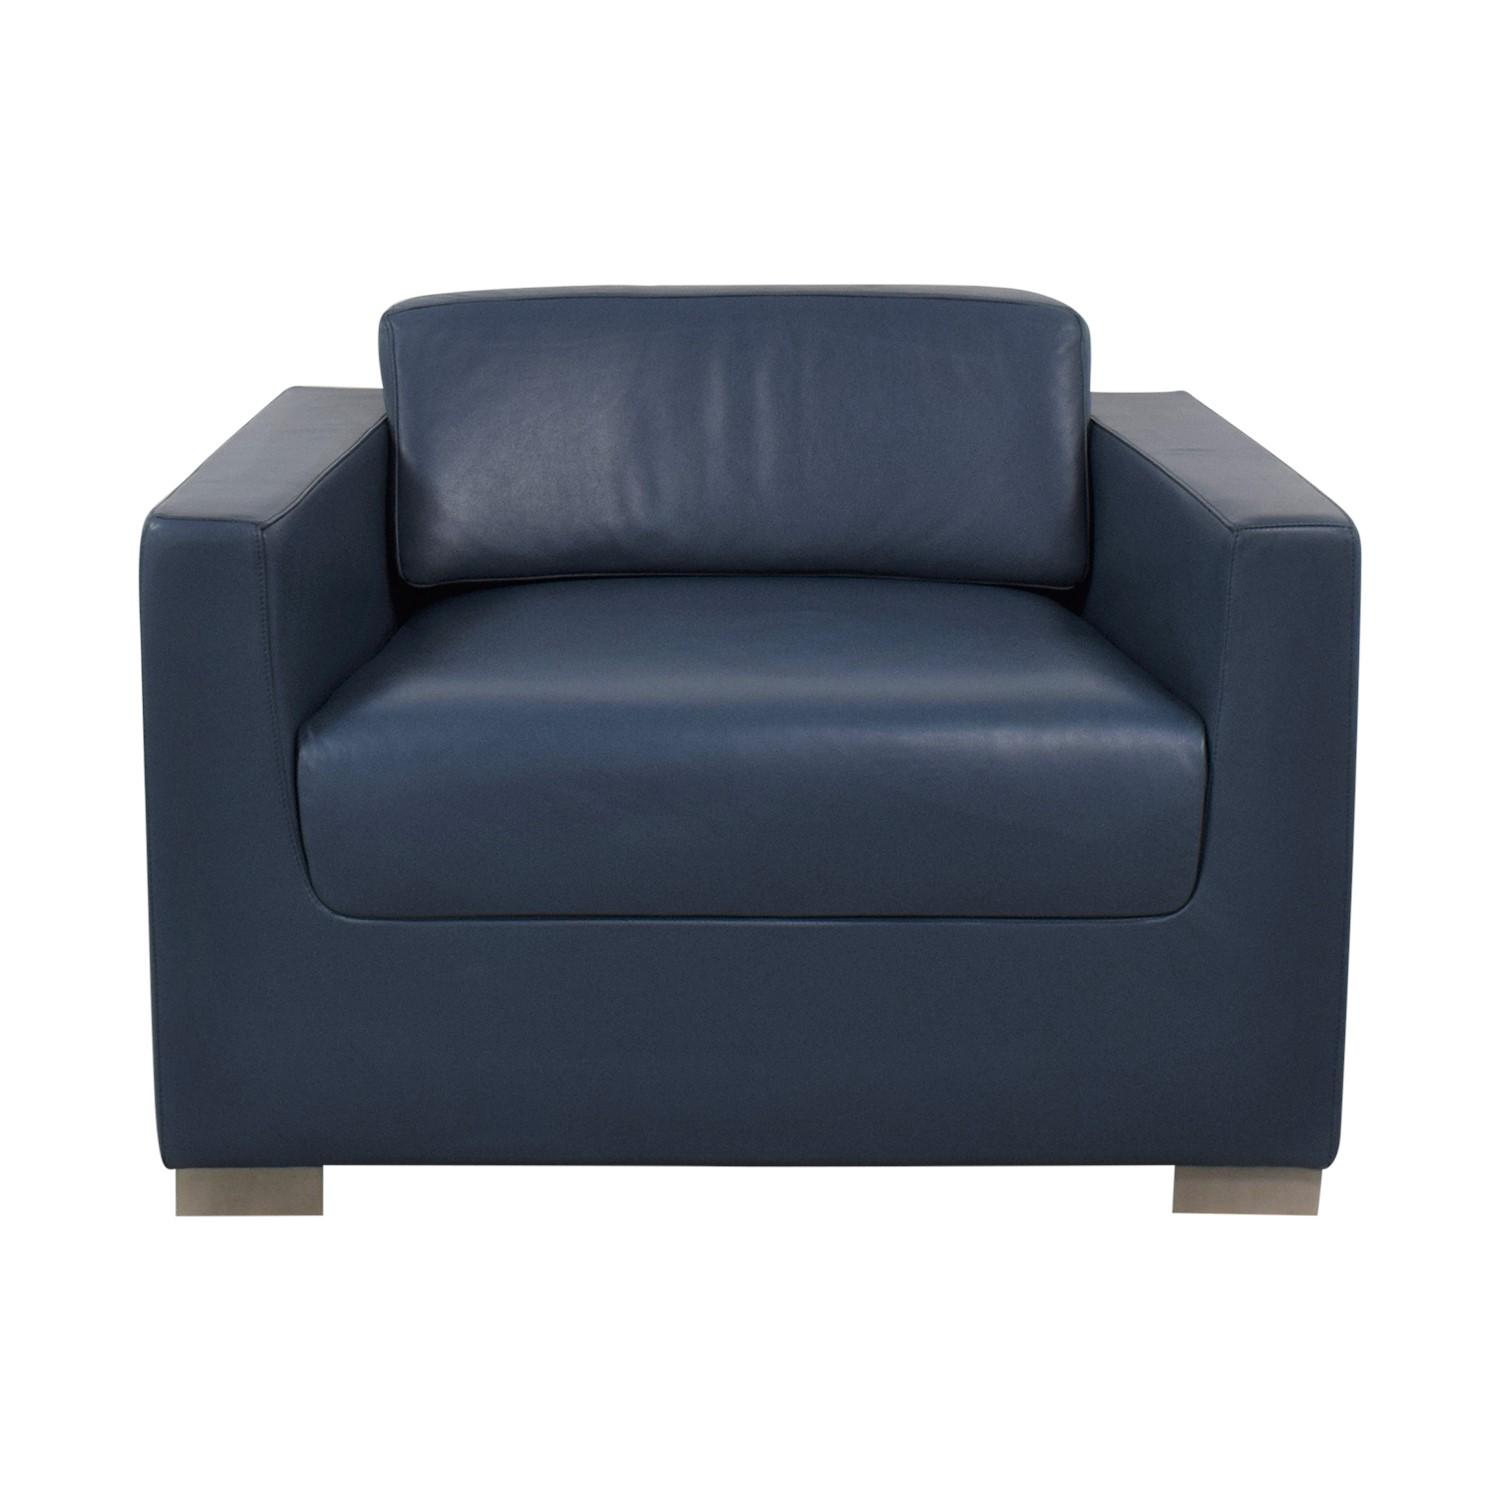 Bernhardt Bernhardt Design League Blue Leather Arm Chair nyc